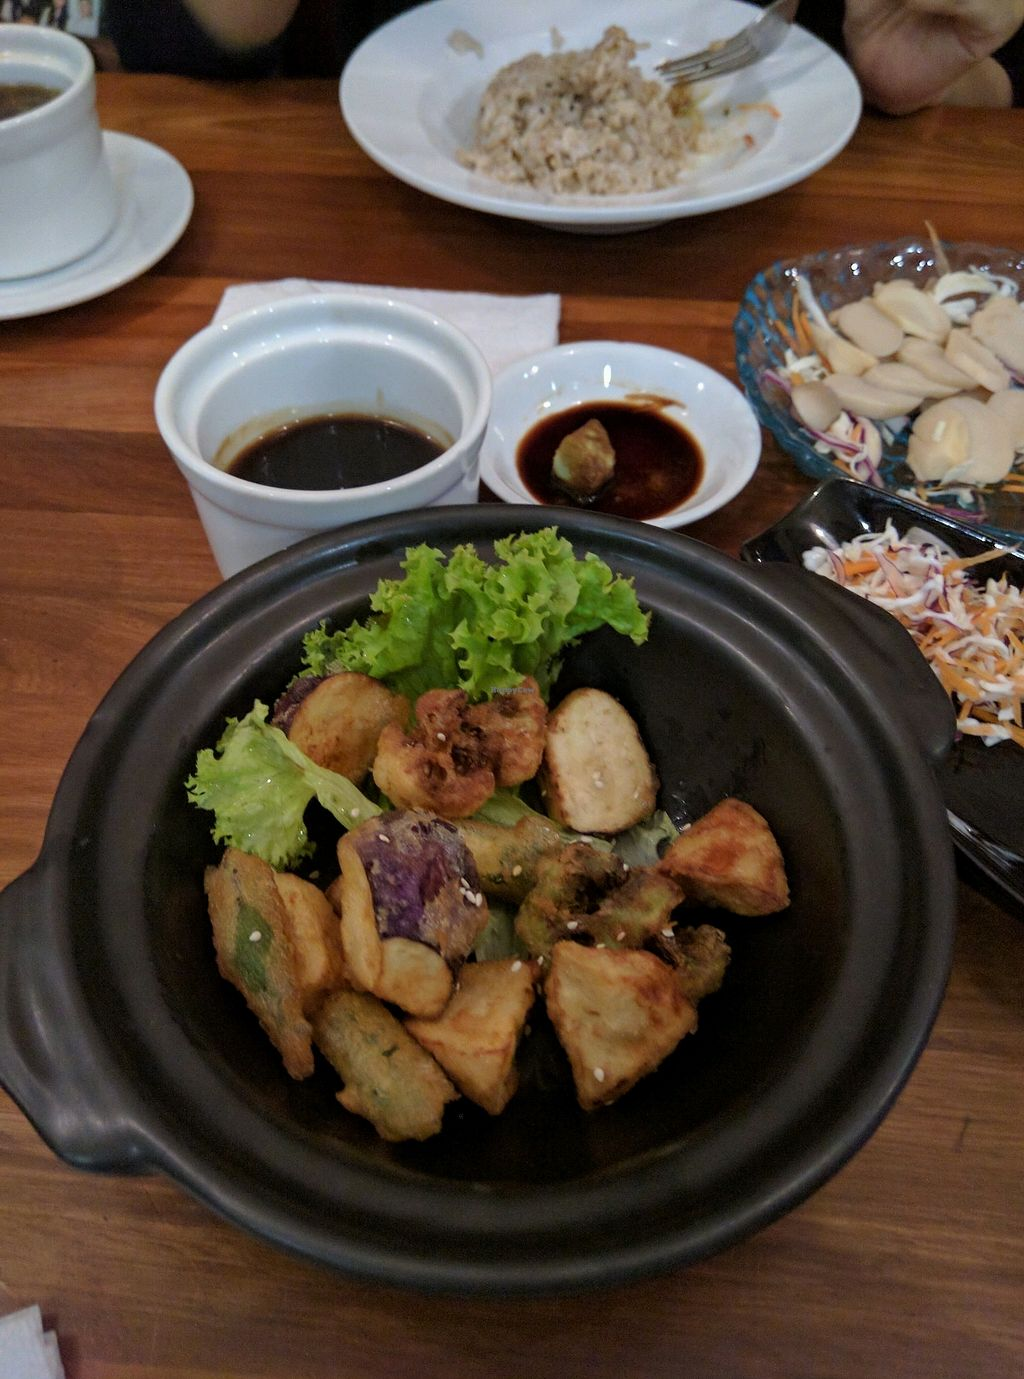 """Photo of Journey2Life  by <a href=""""/members/profile/Summer_Tan"""">Summer_Tan</a> <br/>Tempura Vegetables - Nice and crunchy with a nice sauce <br/> January 31, 2018  - <a href='/contact/abuse/image/33178/353328'>Report</a>"""